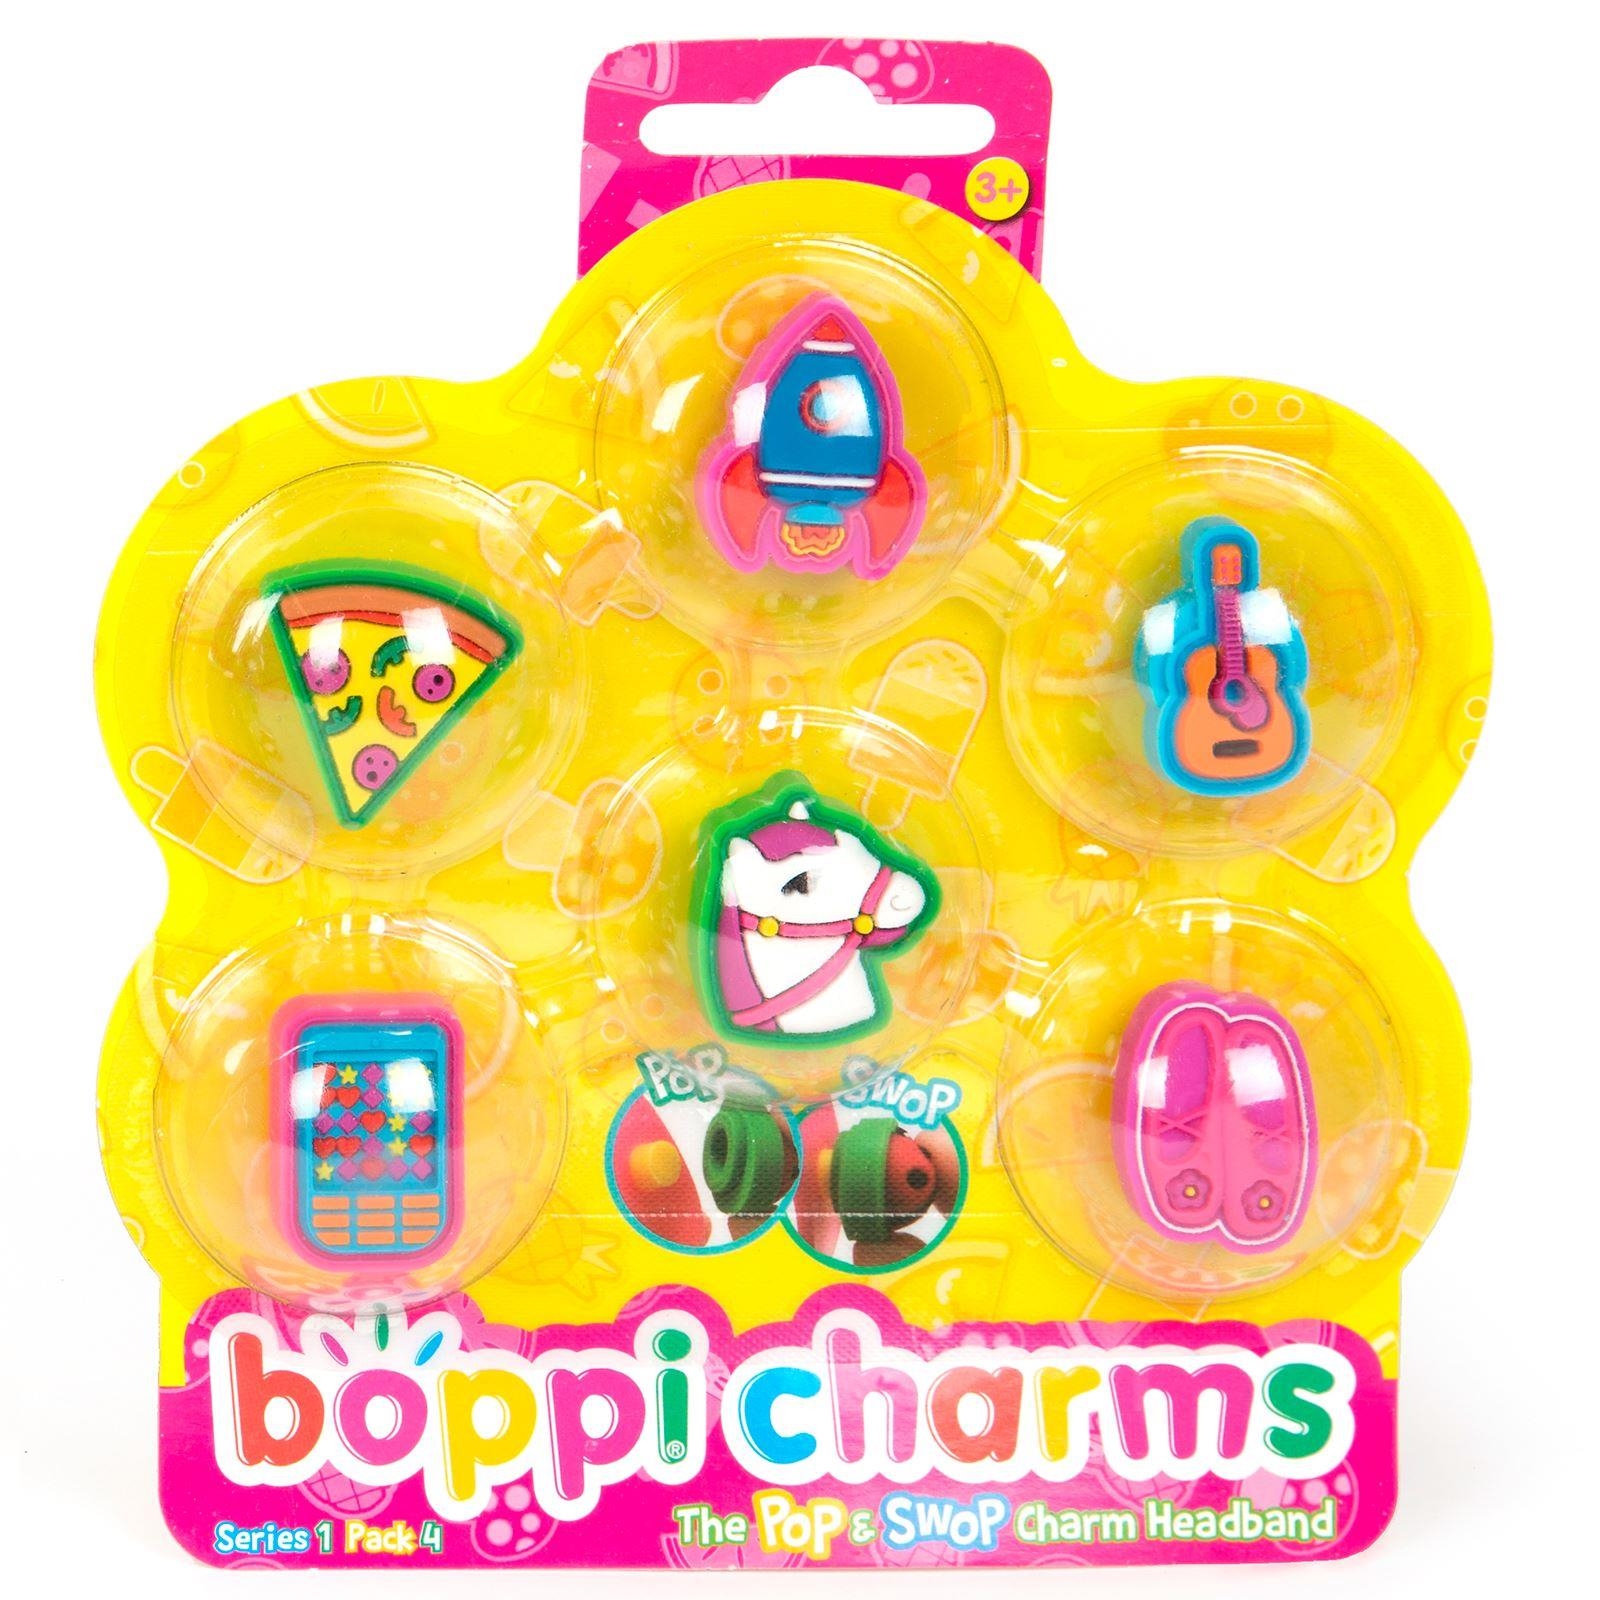 boppiband boppi Charms Pack Series 1 Pack 4 - 6 Charms Packaged